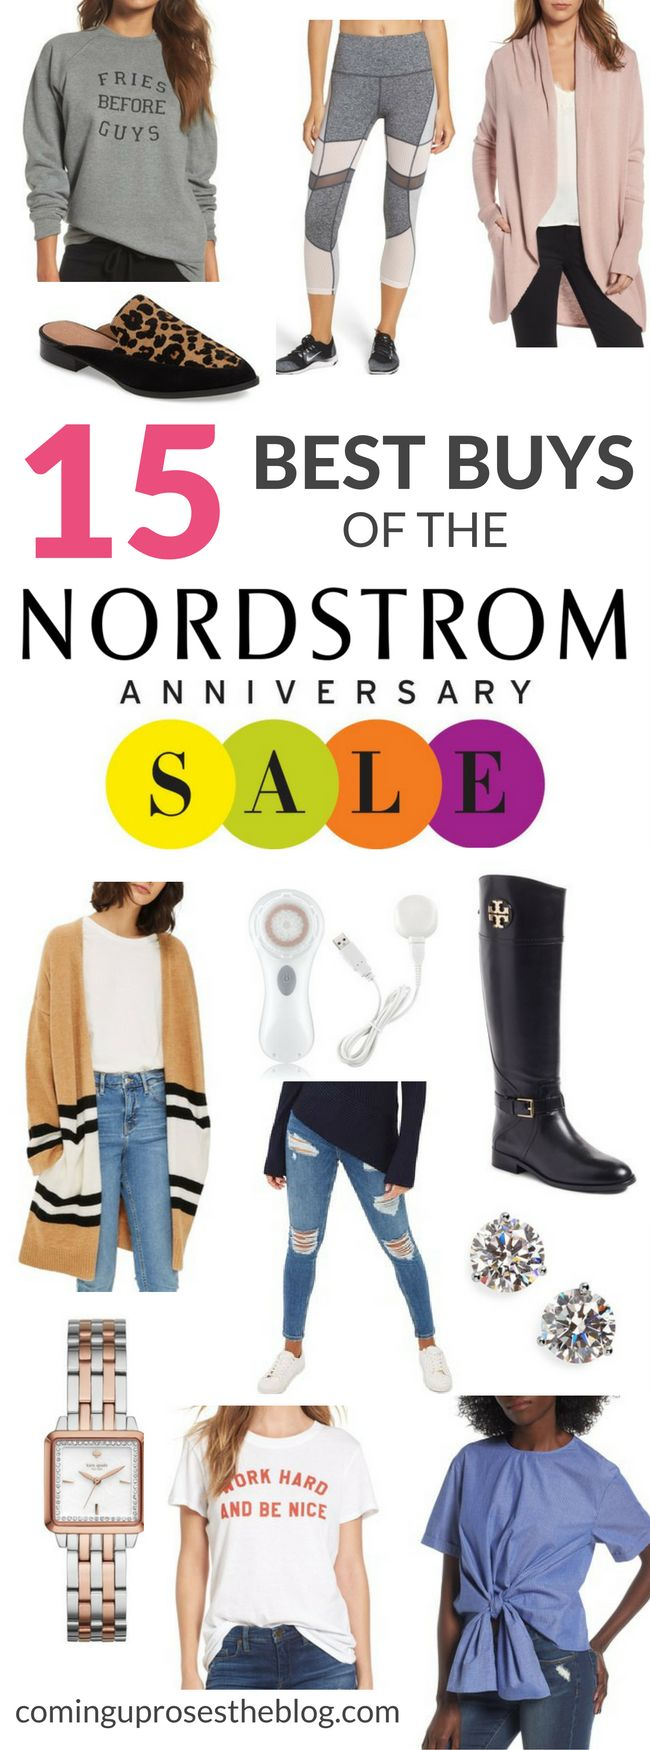 15 Amazing Fall Buys to Score From Nordstroms Labor Day Weekend Sale 15 Amazing Fall Buys to Score From Nordstroms Labor Day Weekend Sale new pictures